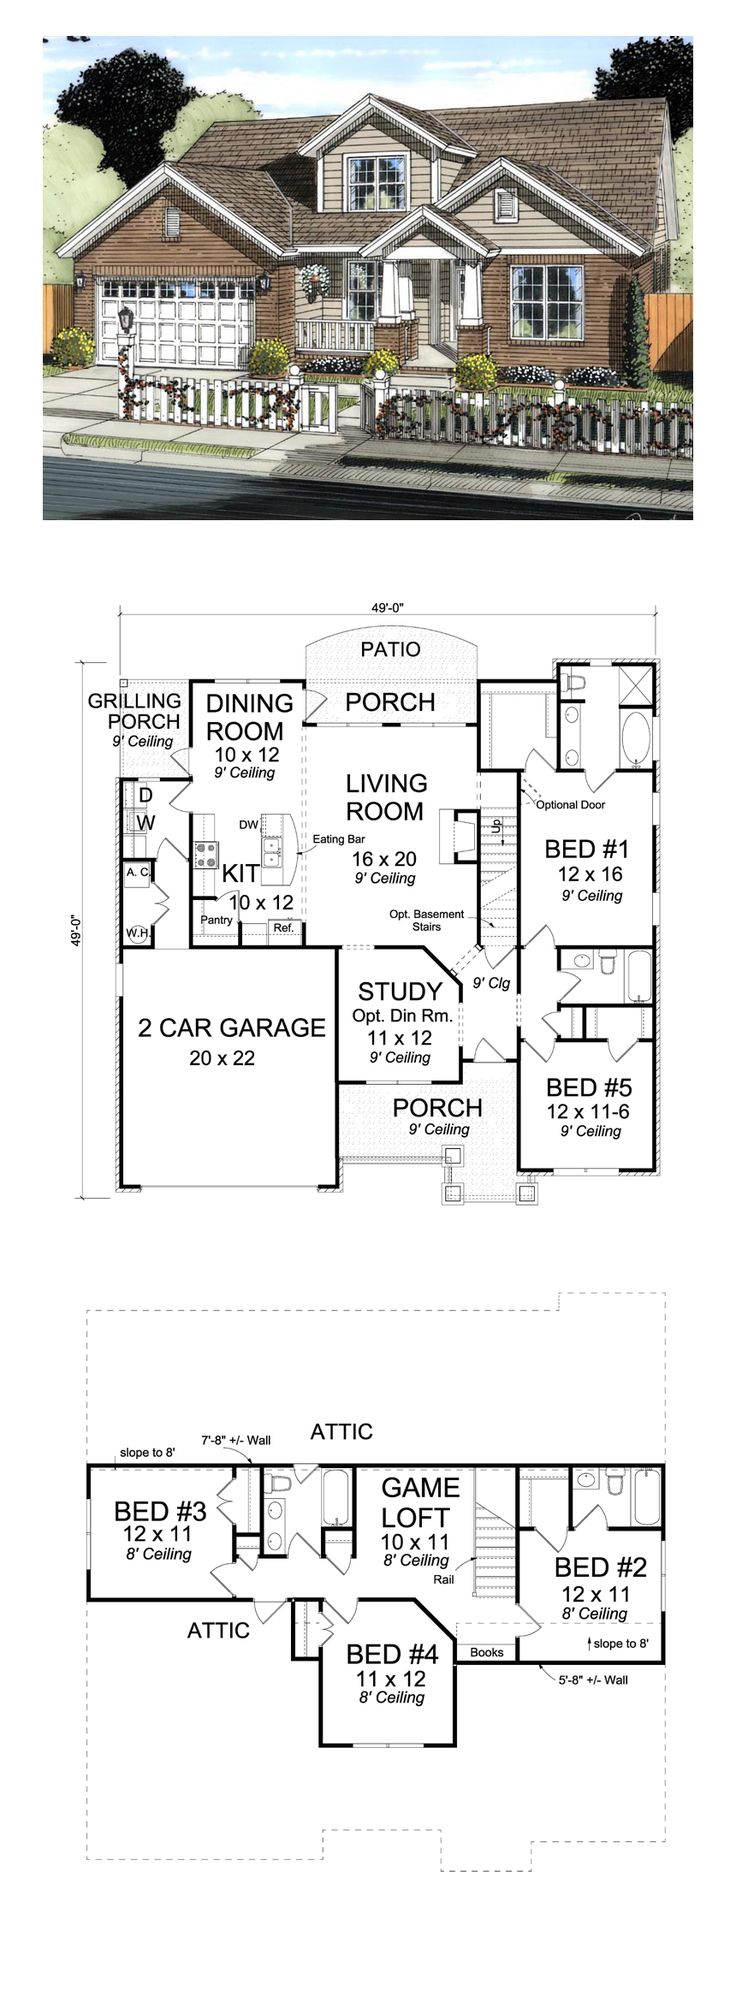 5 bedroom 3 bathroom house plans - Craftsman Traditional House Plan 61421